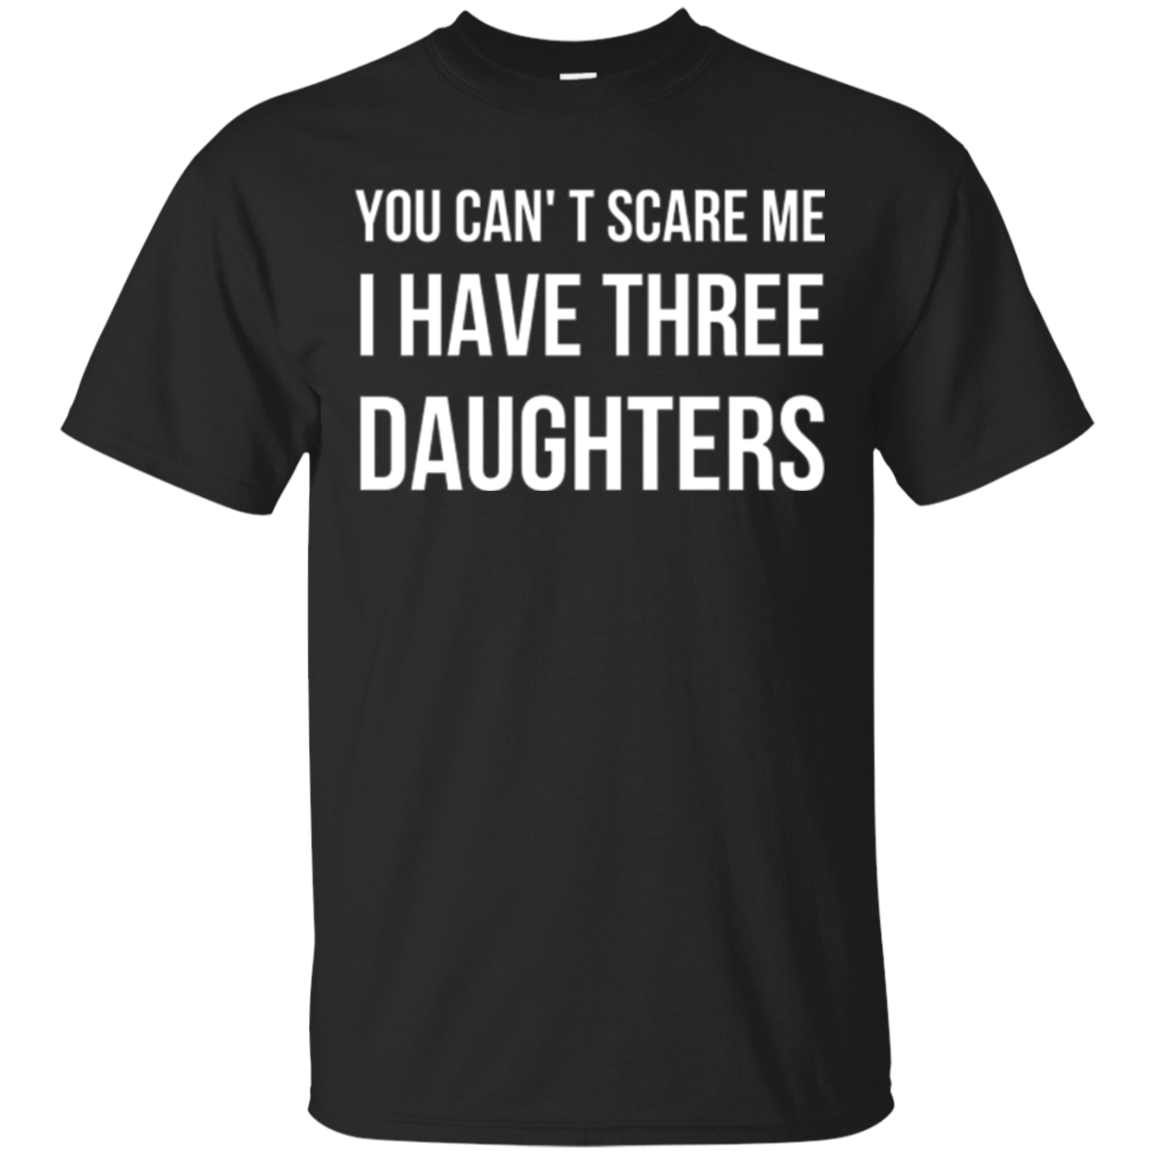 You Can't Scare Me - I Have Three Daughters - Parents Shirt